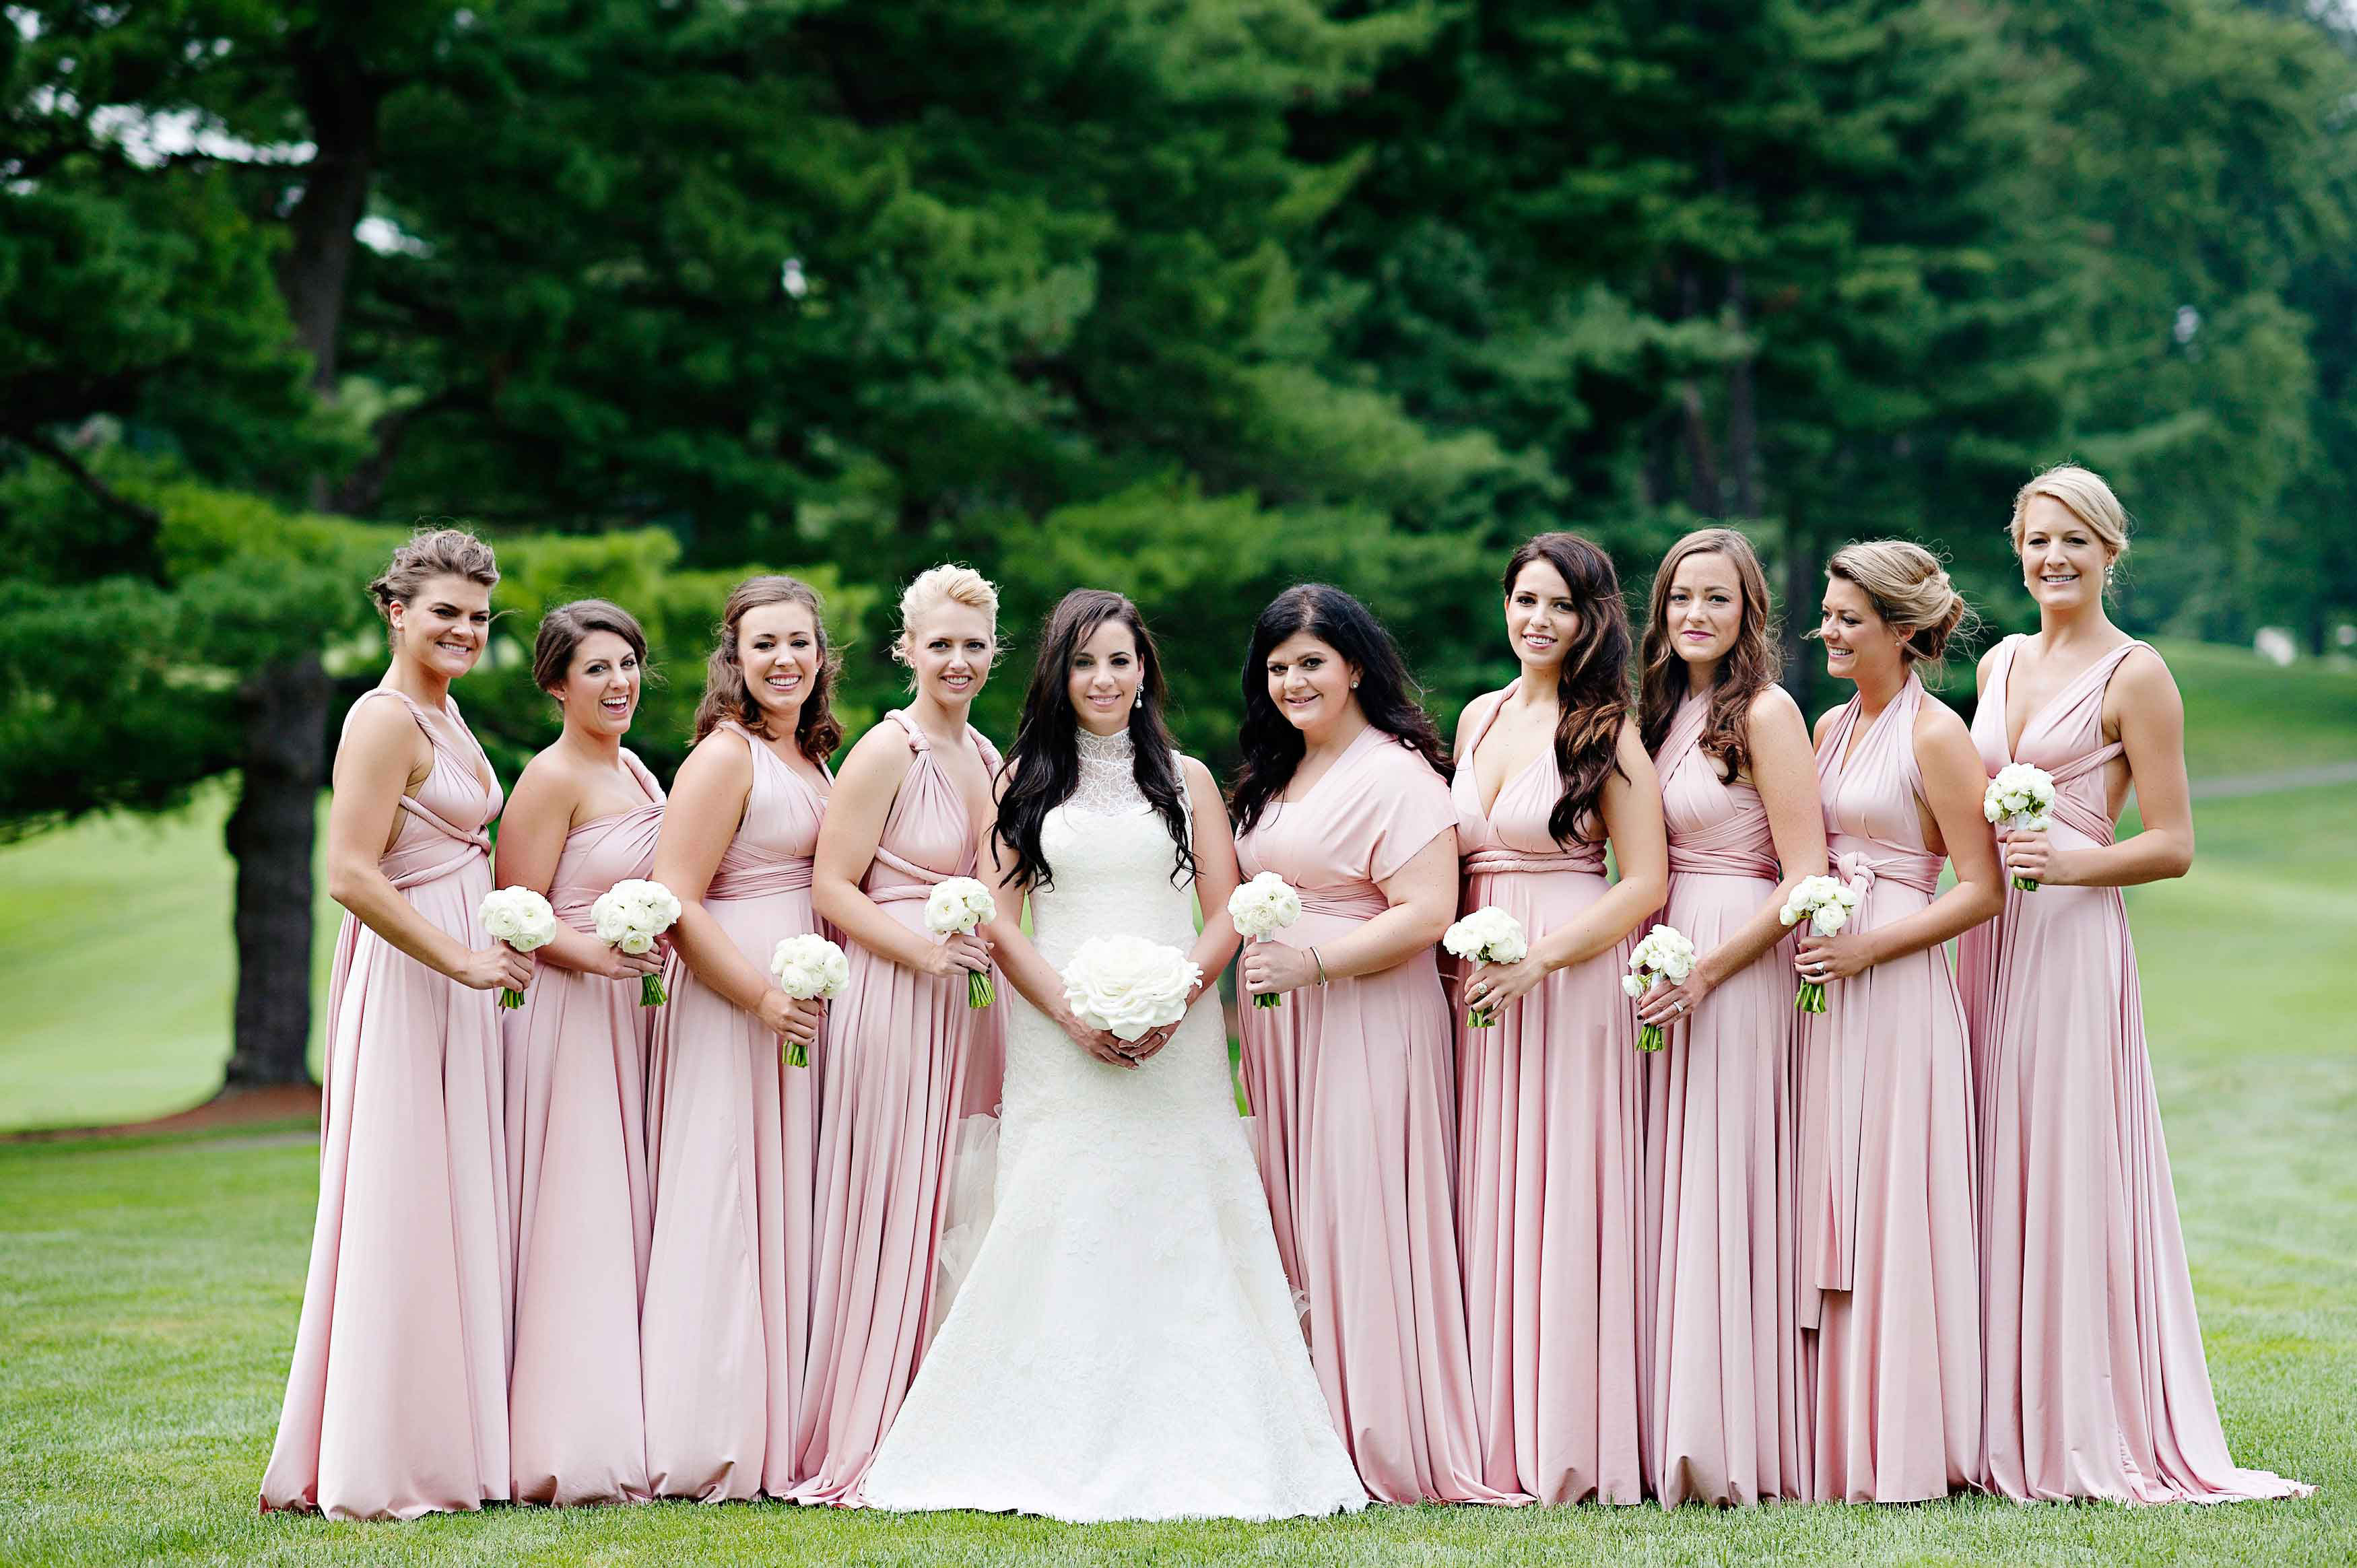 Bridesmaids different dresses same color pink